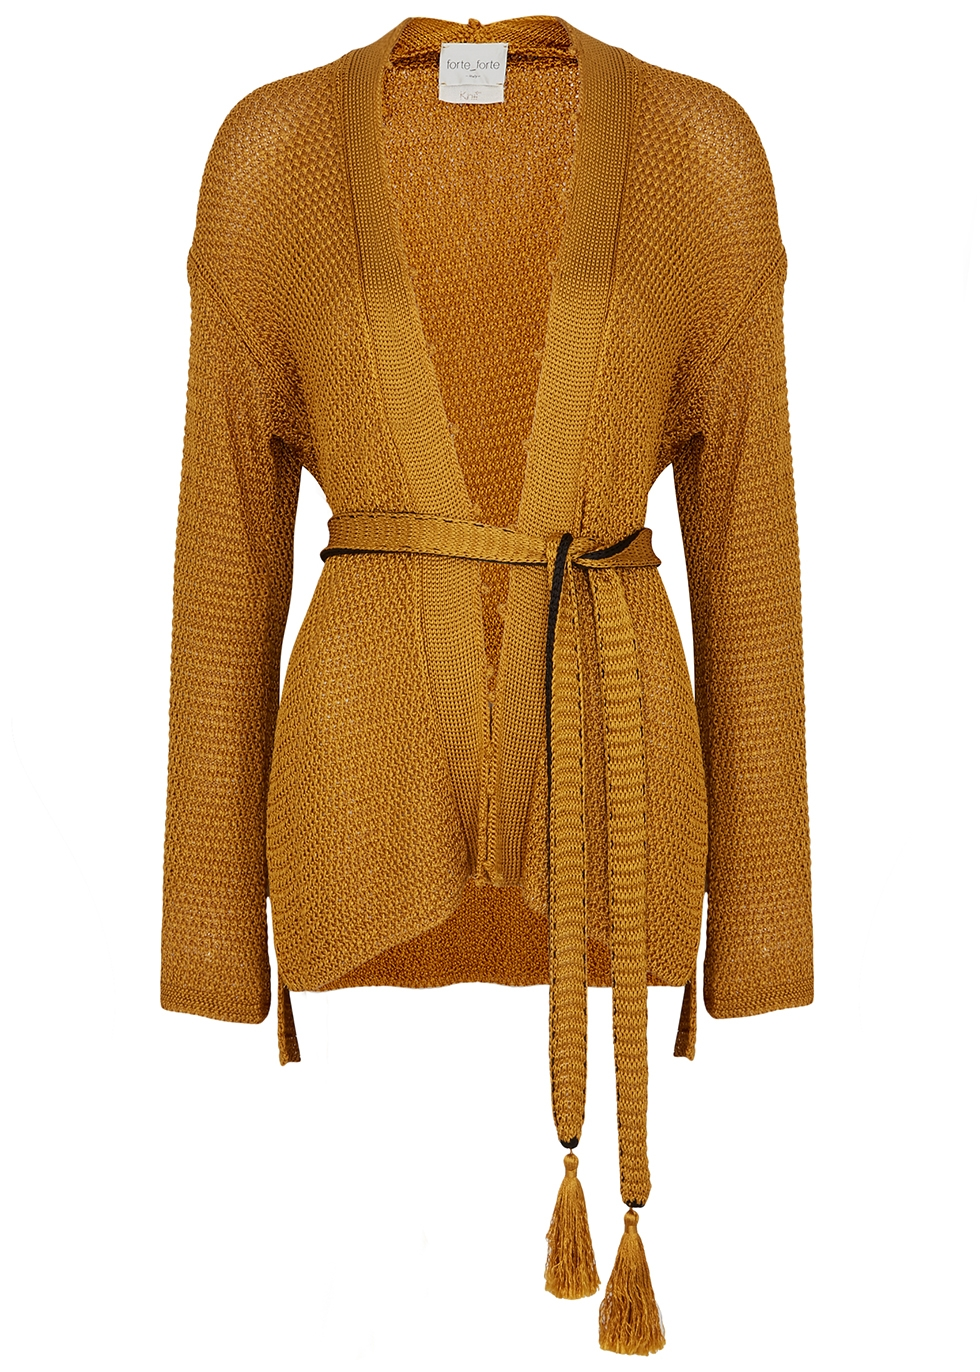 Gold belted cardigan